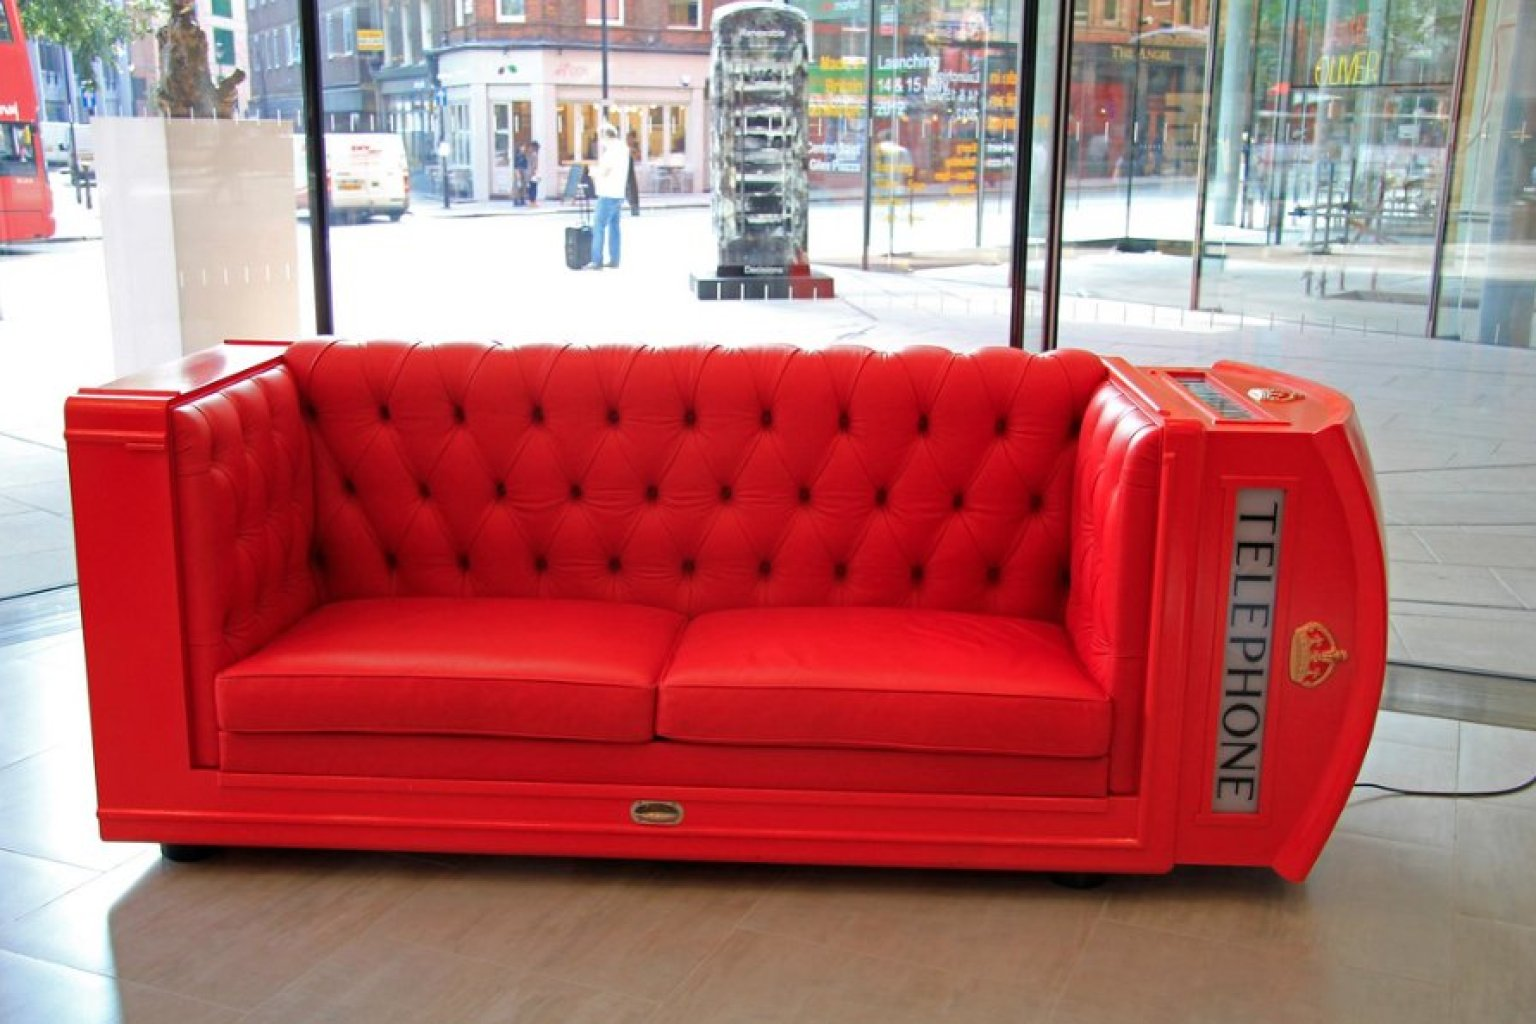 11 extreme sofas that will make you rethink your trusty couch photos